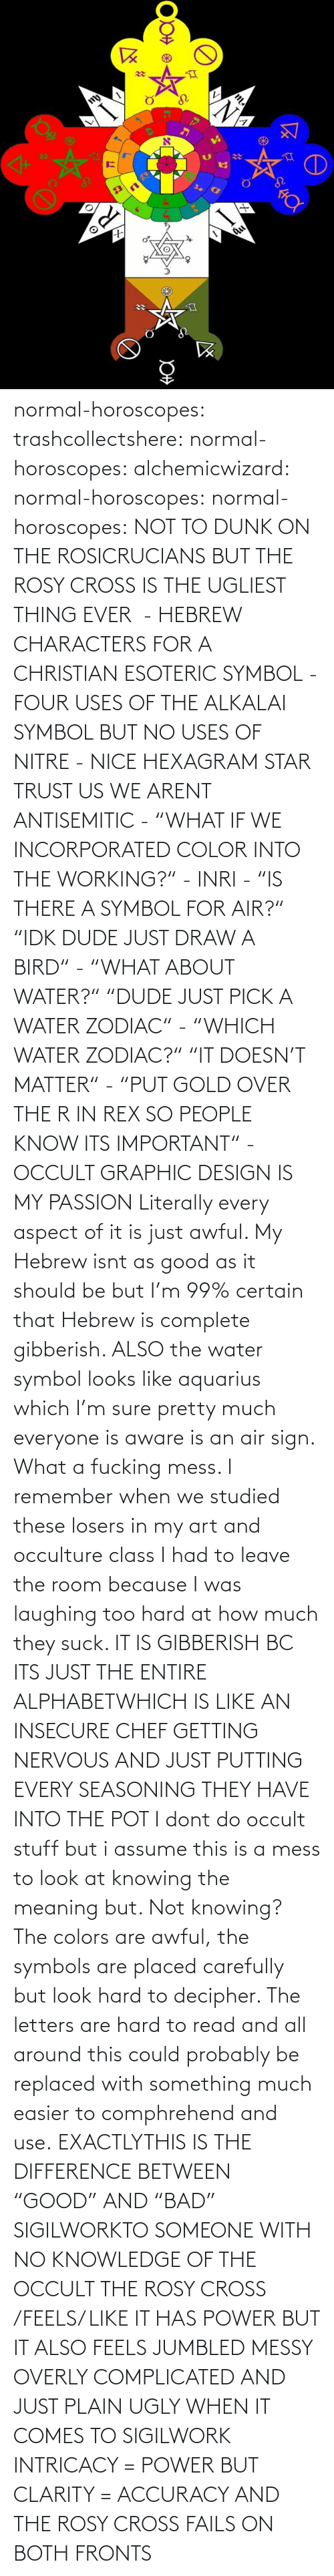 "i remember: normal-horoscopes:  trashcollectshere: normal-horoscopes:   alchemicwizard:  normal-horoscopes:  normal-horoscopes: NOT TO DUNK ON THE ROSICRUCIANS BUT THE ROSY CROSS IS THE UGLIEST THING EVER  - HEBREW CHARACTERS FOR A CHRISTIAN ESOTERIC SYMBOL - FOUR USES OF THE ALKALAI SYMBOL BUT NO USES OF NITRE - NICE HEXAGRAM STAR TRUST US WE ARENT ANTISEMITIC - ""WHAT IF WE INCORPORATED COLOR INTO THE WORKING?"" - INRI - ""IS THERE A SYMBOL FOR AIR?"" ""IDK DUDE JUST DRAW A BIRD"" - ""WHAT ABOUT WATER?"" ""DUDE JUST PICK A WATER ZODIAC"" - ""WHICH WATER ZODIAC?"" ""IT DOESN'T MATTER"" - ""PUT GOLD OVER THE R IN REX SO PEOPLE KNOW ITS IMPORTANT"" - OCCULT GRAPHIC DESIGN IS MY PASSION  Literally every aspect of it is just awful. My Hebrew isnt as good as it should be but I'm 99% certain that Hebrew is complete gibberish.  ALSO the water symbol looks like aquarius which I'm sure pretty much everyone is aware is an air sign. What a fucking mess.  I remember when we studied these losers in my art and occulture class I had to leave the room because I was laughing too hard at how much they suck.   IT IS GIBBERISH BC ITS JUST THE ENTIRE ALPHABETWHICH IS LIKE AN INSECURE CHEF GETTING NERVOUS AND JUST PUTTING EVERY SEASONING THEY HAVE INTO THE POT     I dont do occult stuff but i assume this is a mess to look at knowing the meaning but. Not knowing? The colors are awful, the symbols are placed carefully but look hard to decipher. The letters are hard to read and all around this could probably be replaced with something much easier to comphrehend and use.  EXACTLYTHIS IS THE DIFFERENCE BETWEEN ""GOOD"" AND ""BAD"" SIGILWORKTO SOMEONE WITH NO KNOWLEDGE OF THE OCCULT THE ROSY CROSS /FEELS/ LIKE IT HAS POWER BUT IT ALSO FEELS JUMBLED MESSY OVERLY COMPLICATED AND JUST PLAIN UGLY WHEN IT COMES TO SIGILWORK INTRICACY = POWER BUT CLARITY = ACCURACY AND THE ROSY CROSS FAILS ON BOTH FRONTS"